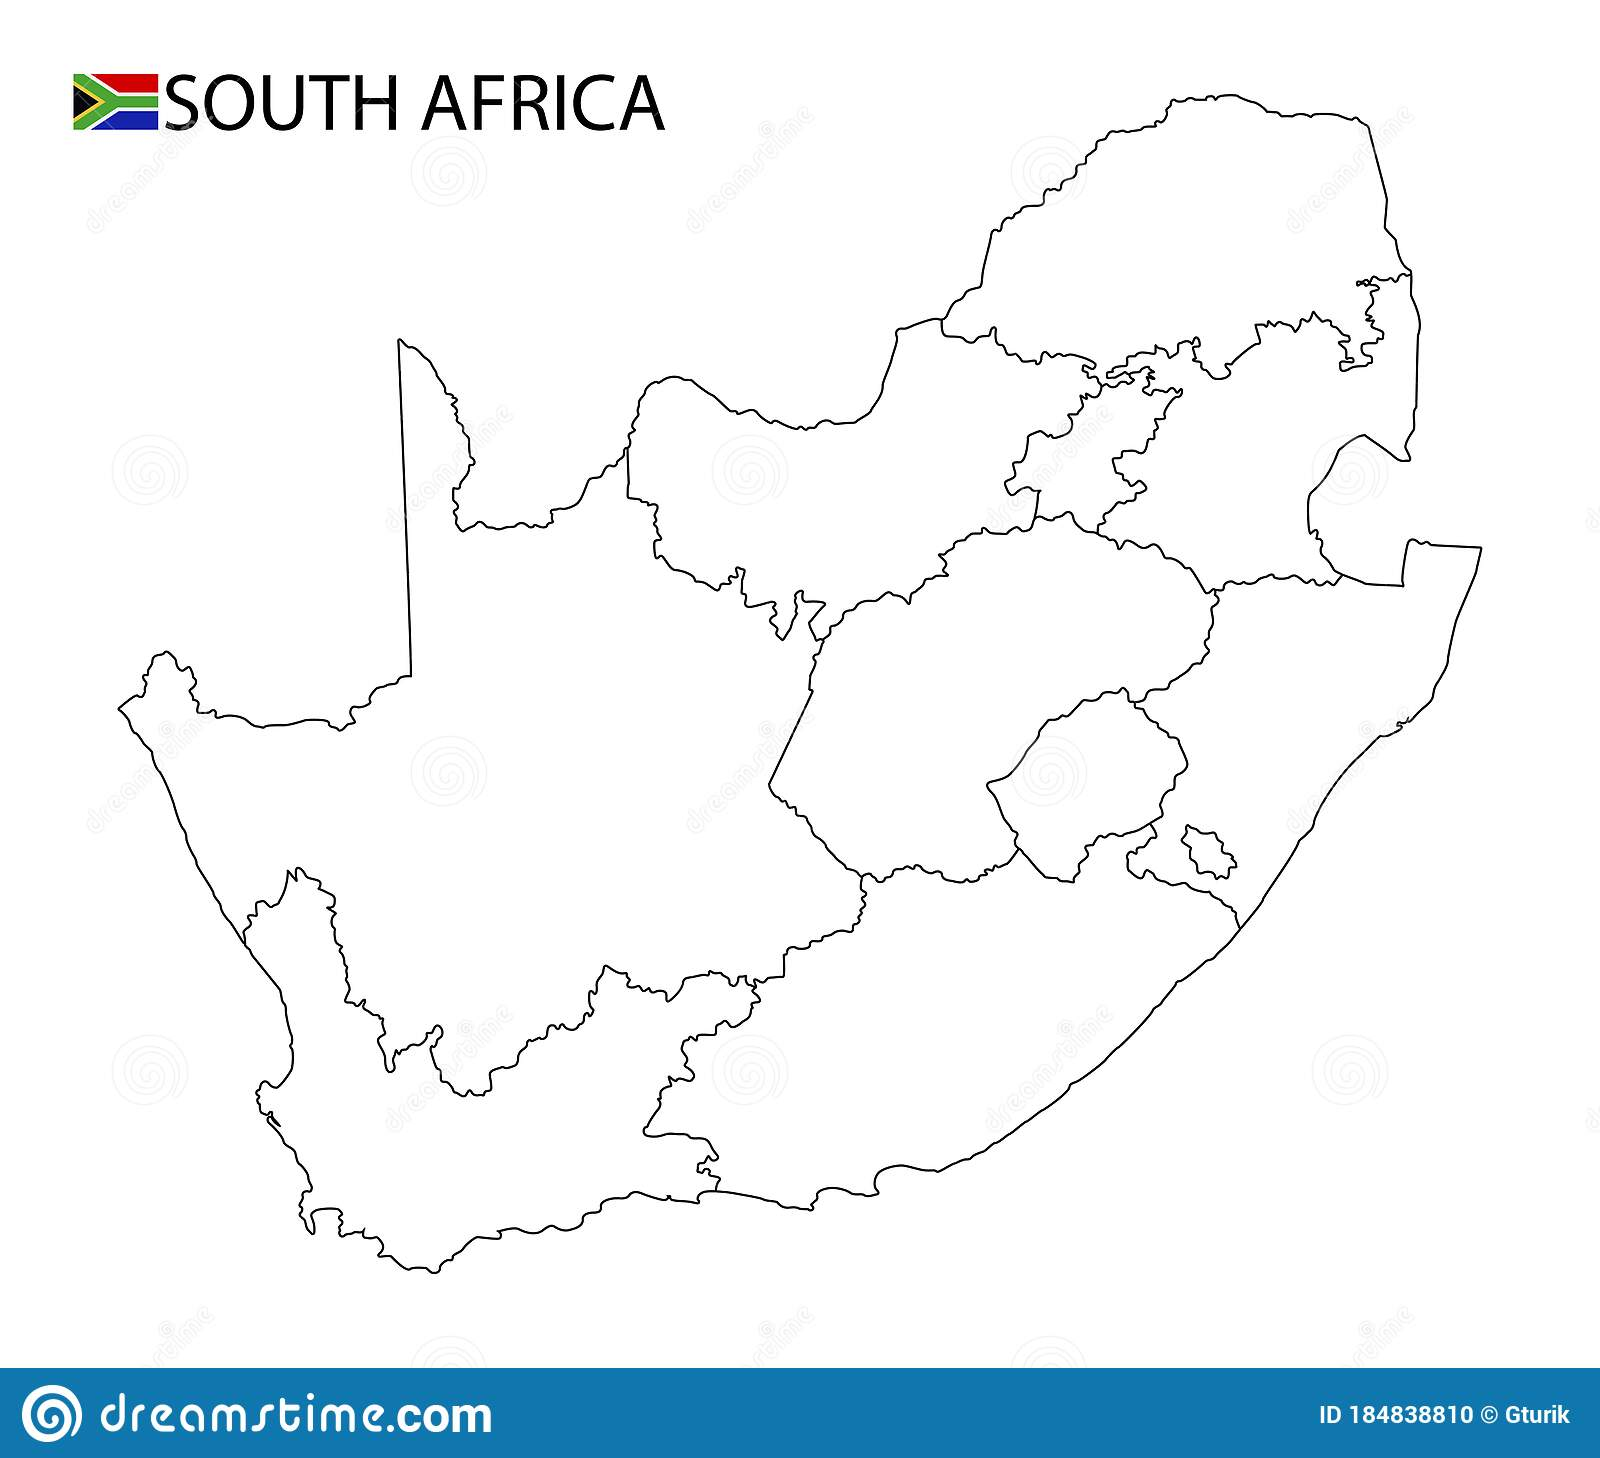 Map South Africa Outline Stock Illustrations 4 538 Map South Africa Outline Stock Illustrations Vectors Clipart Dreamstime